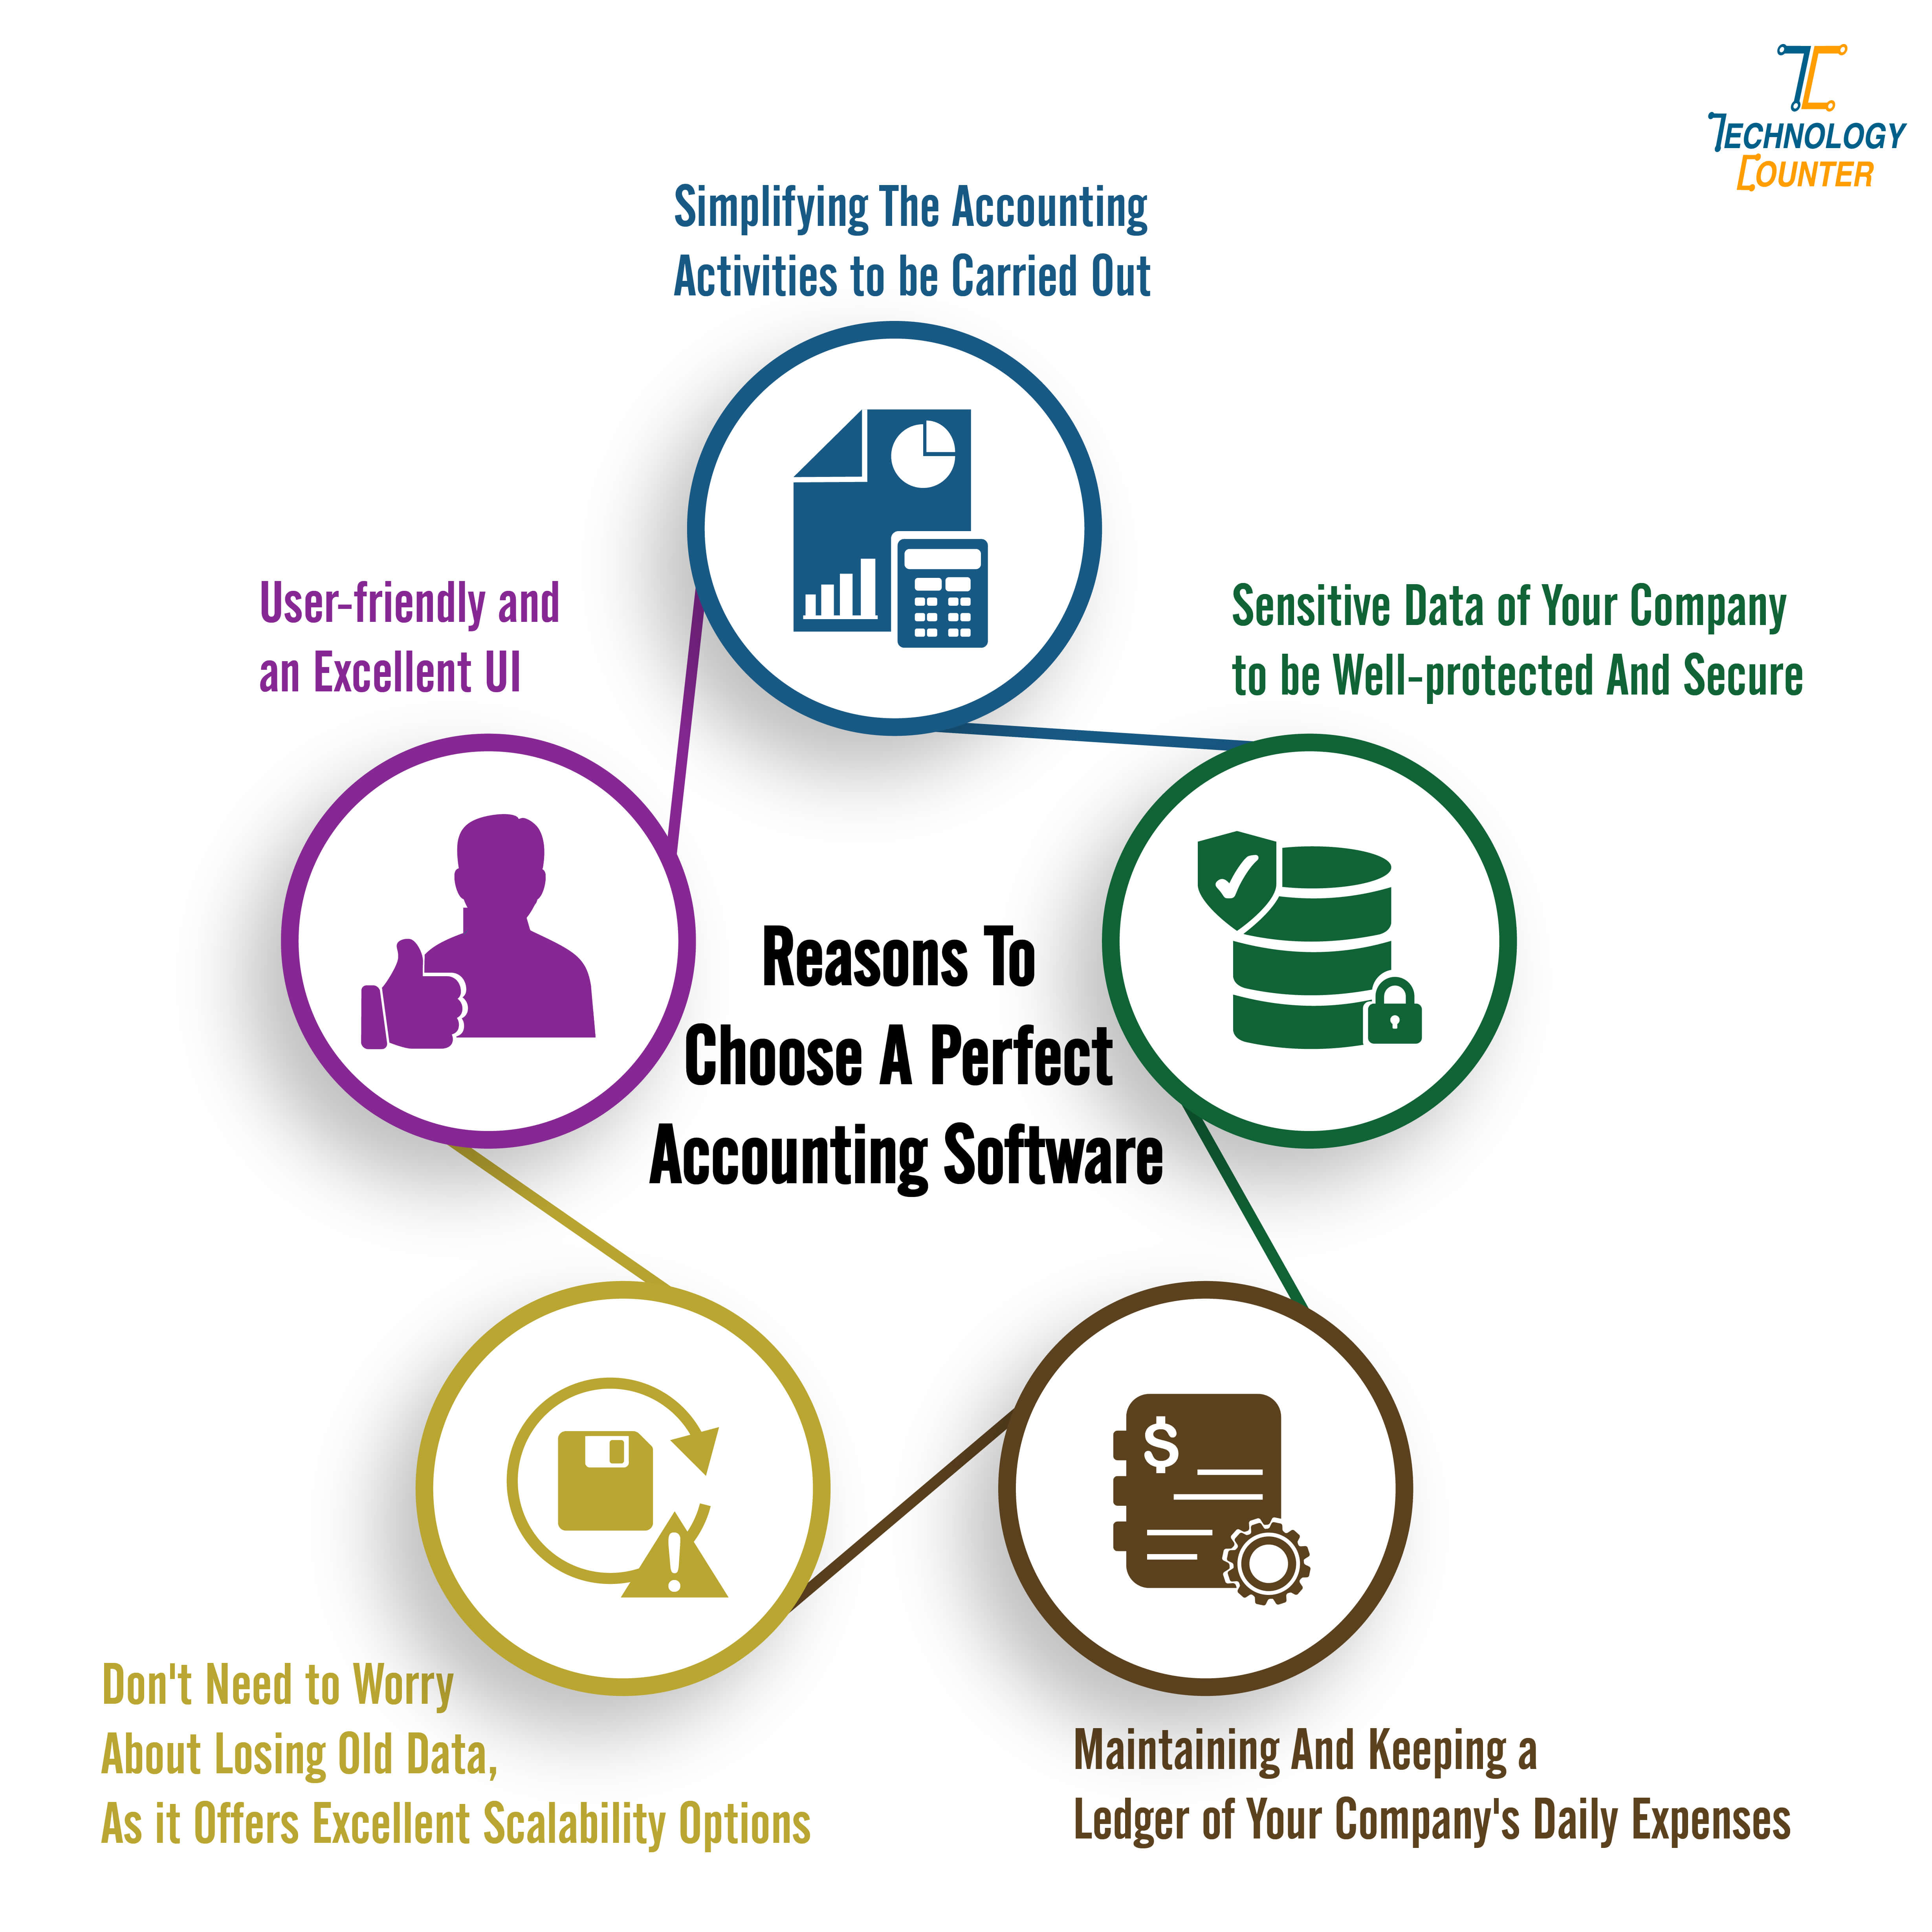 Reasons To Choose A Perfect Accounting Software